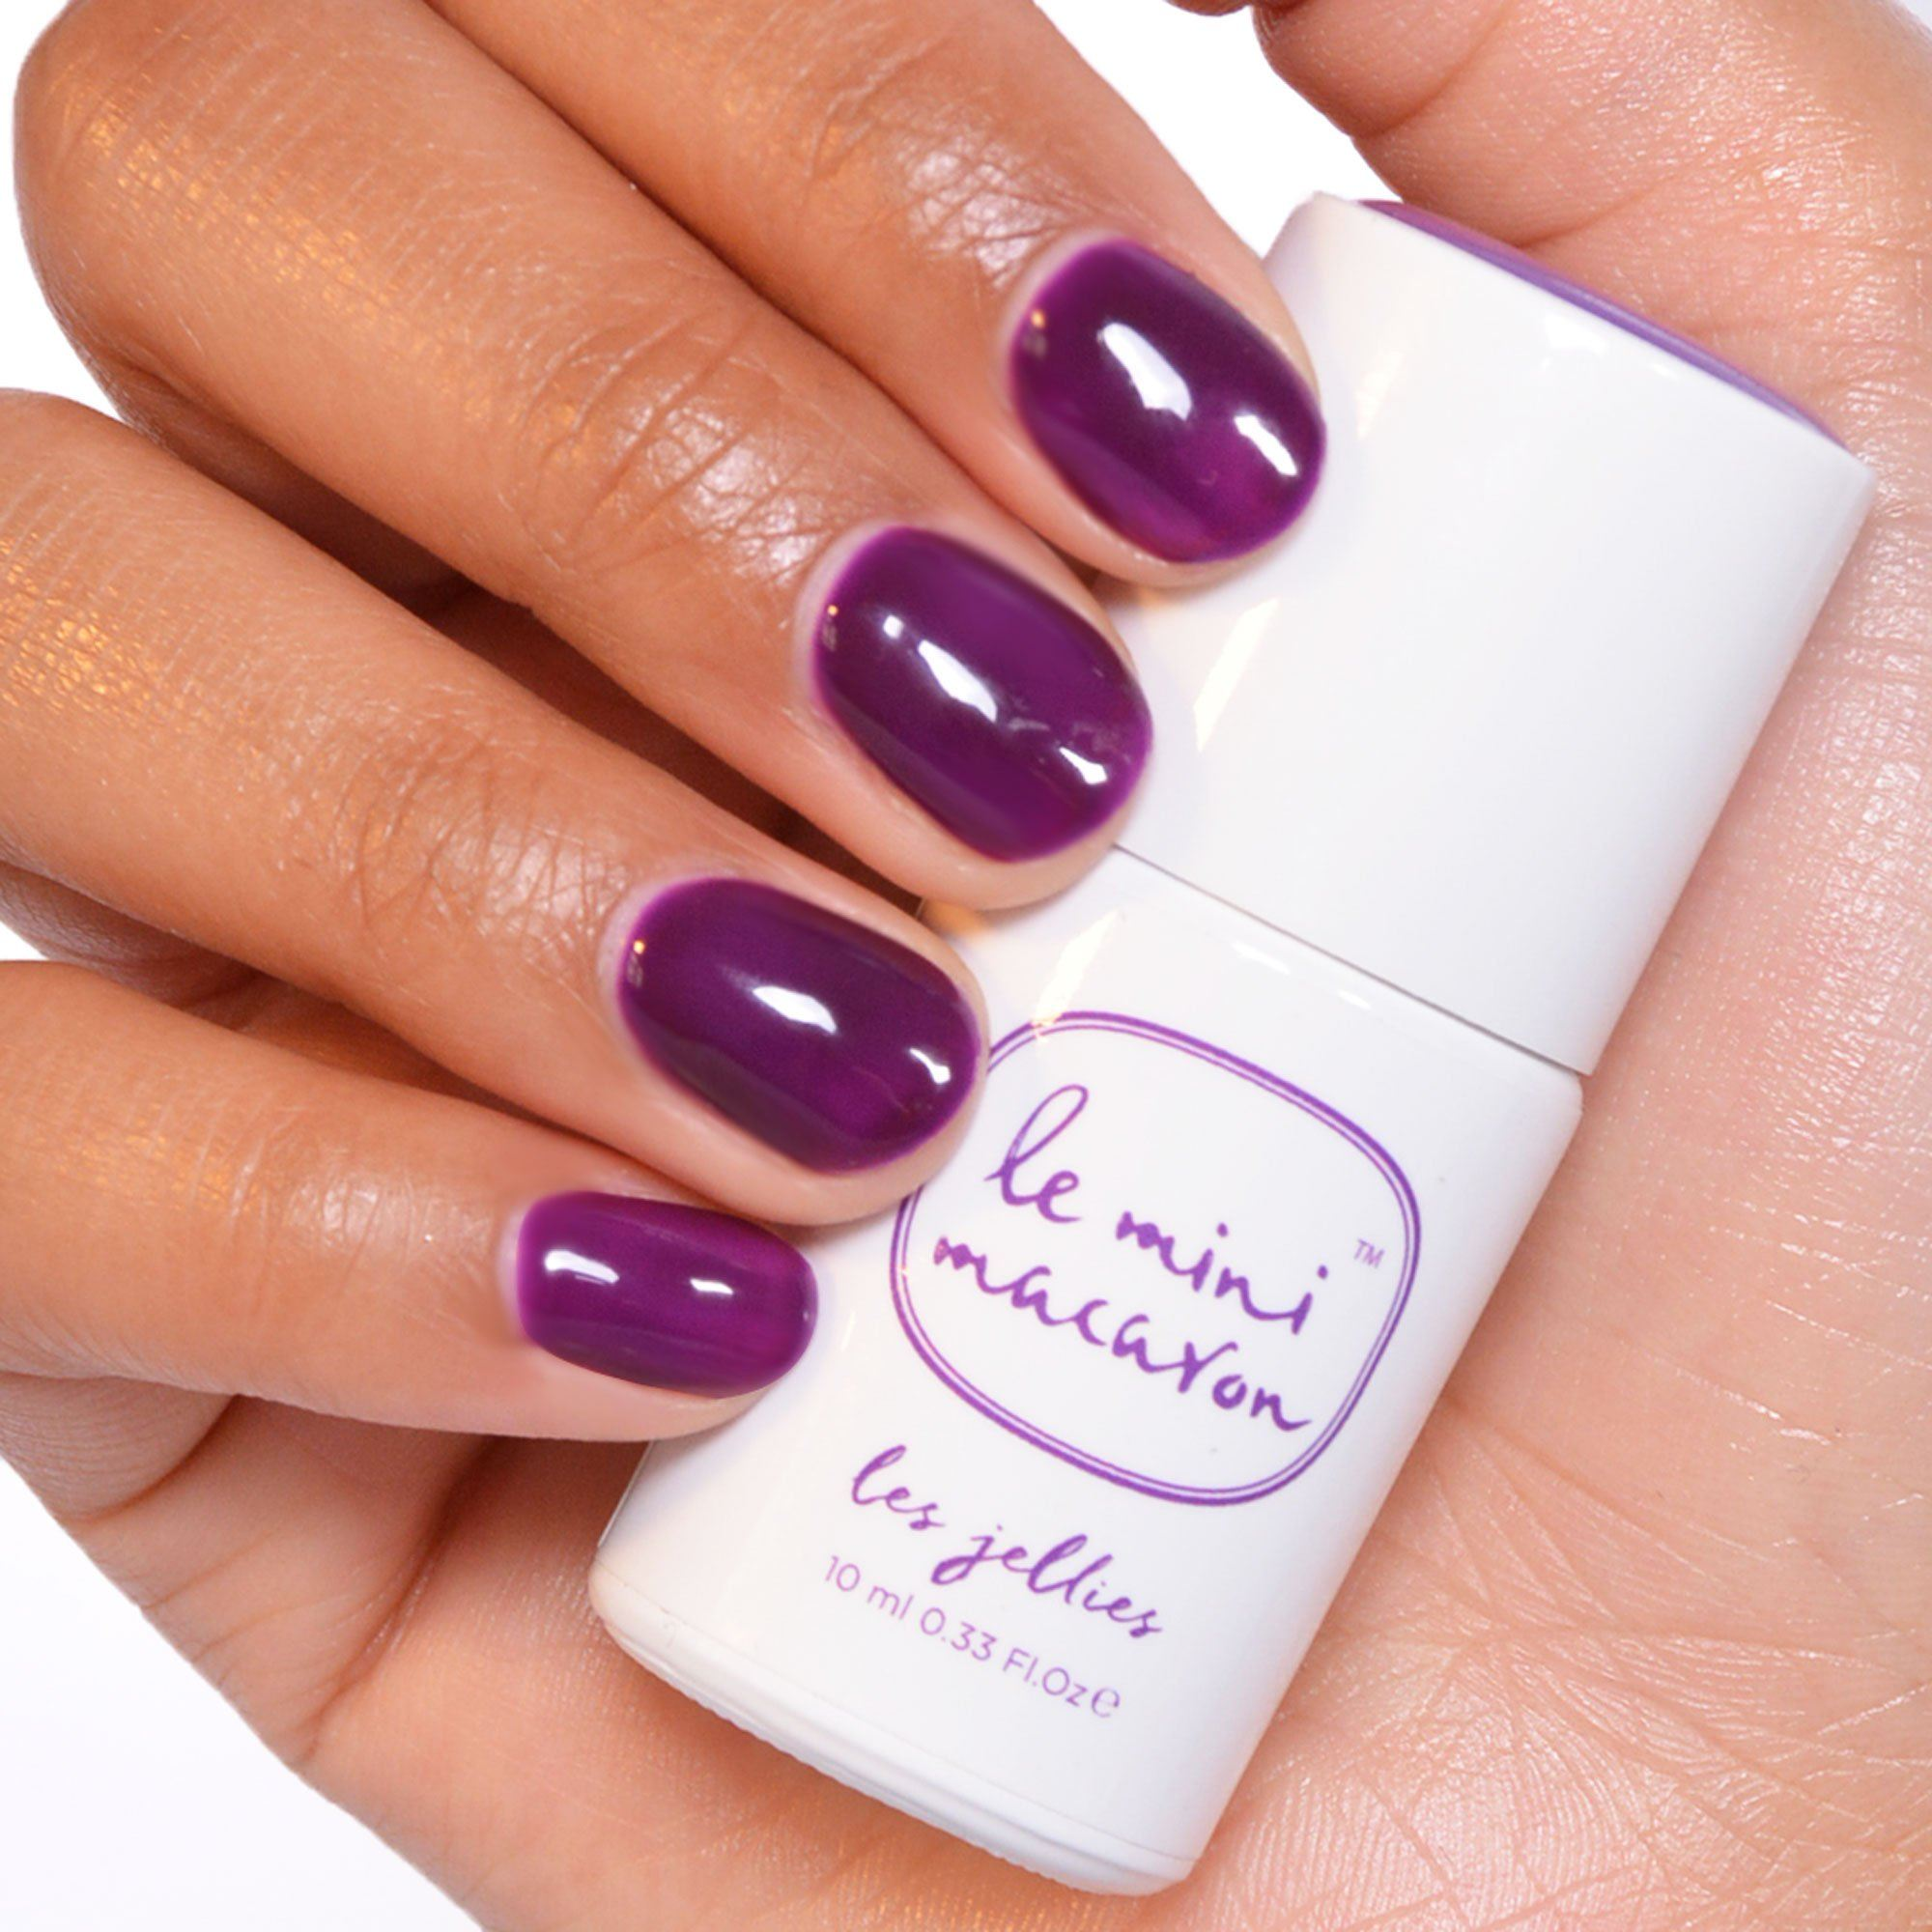 Les Jellies - Grape Jelly Gel Polish - Le Mini Macaron